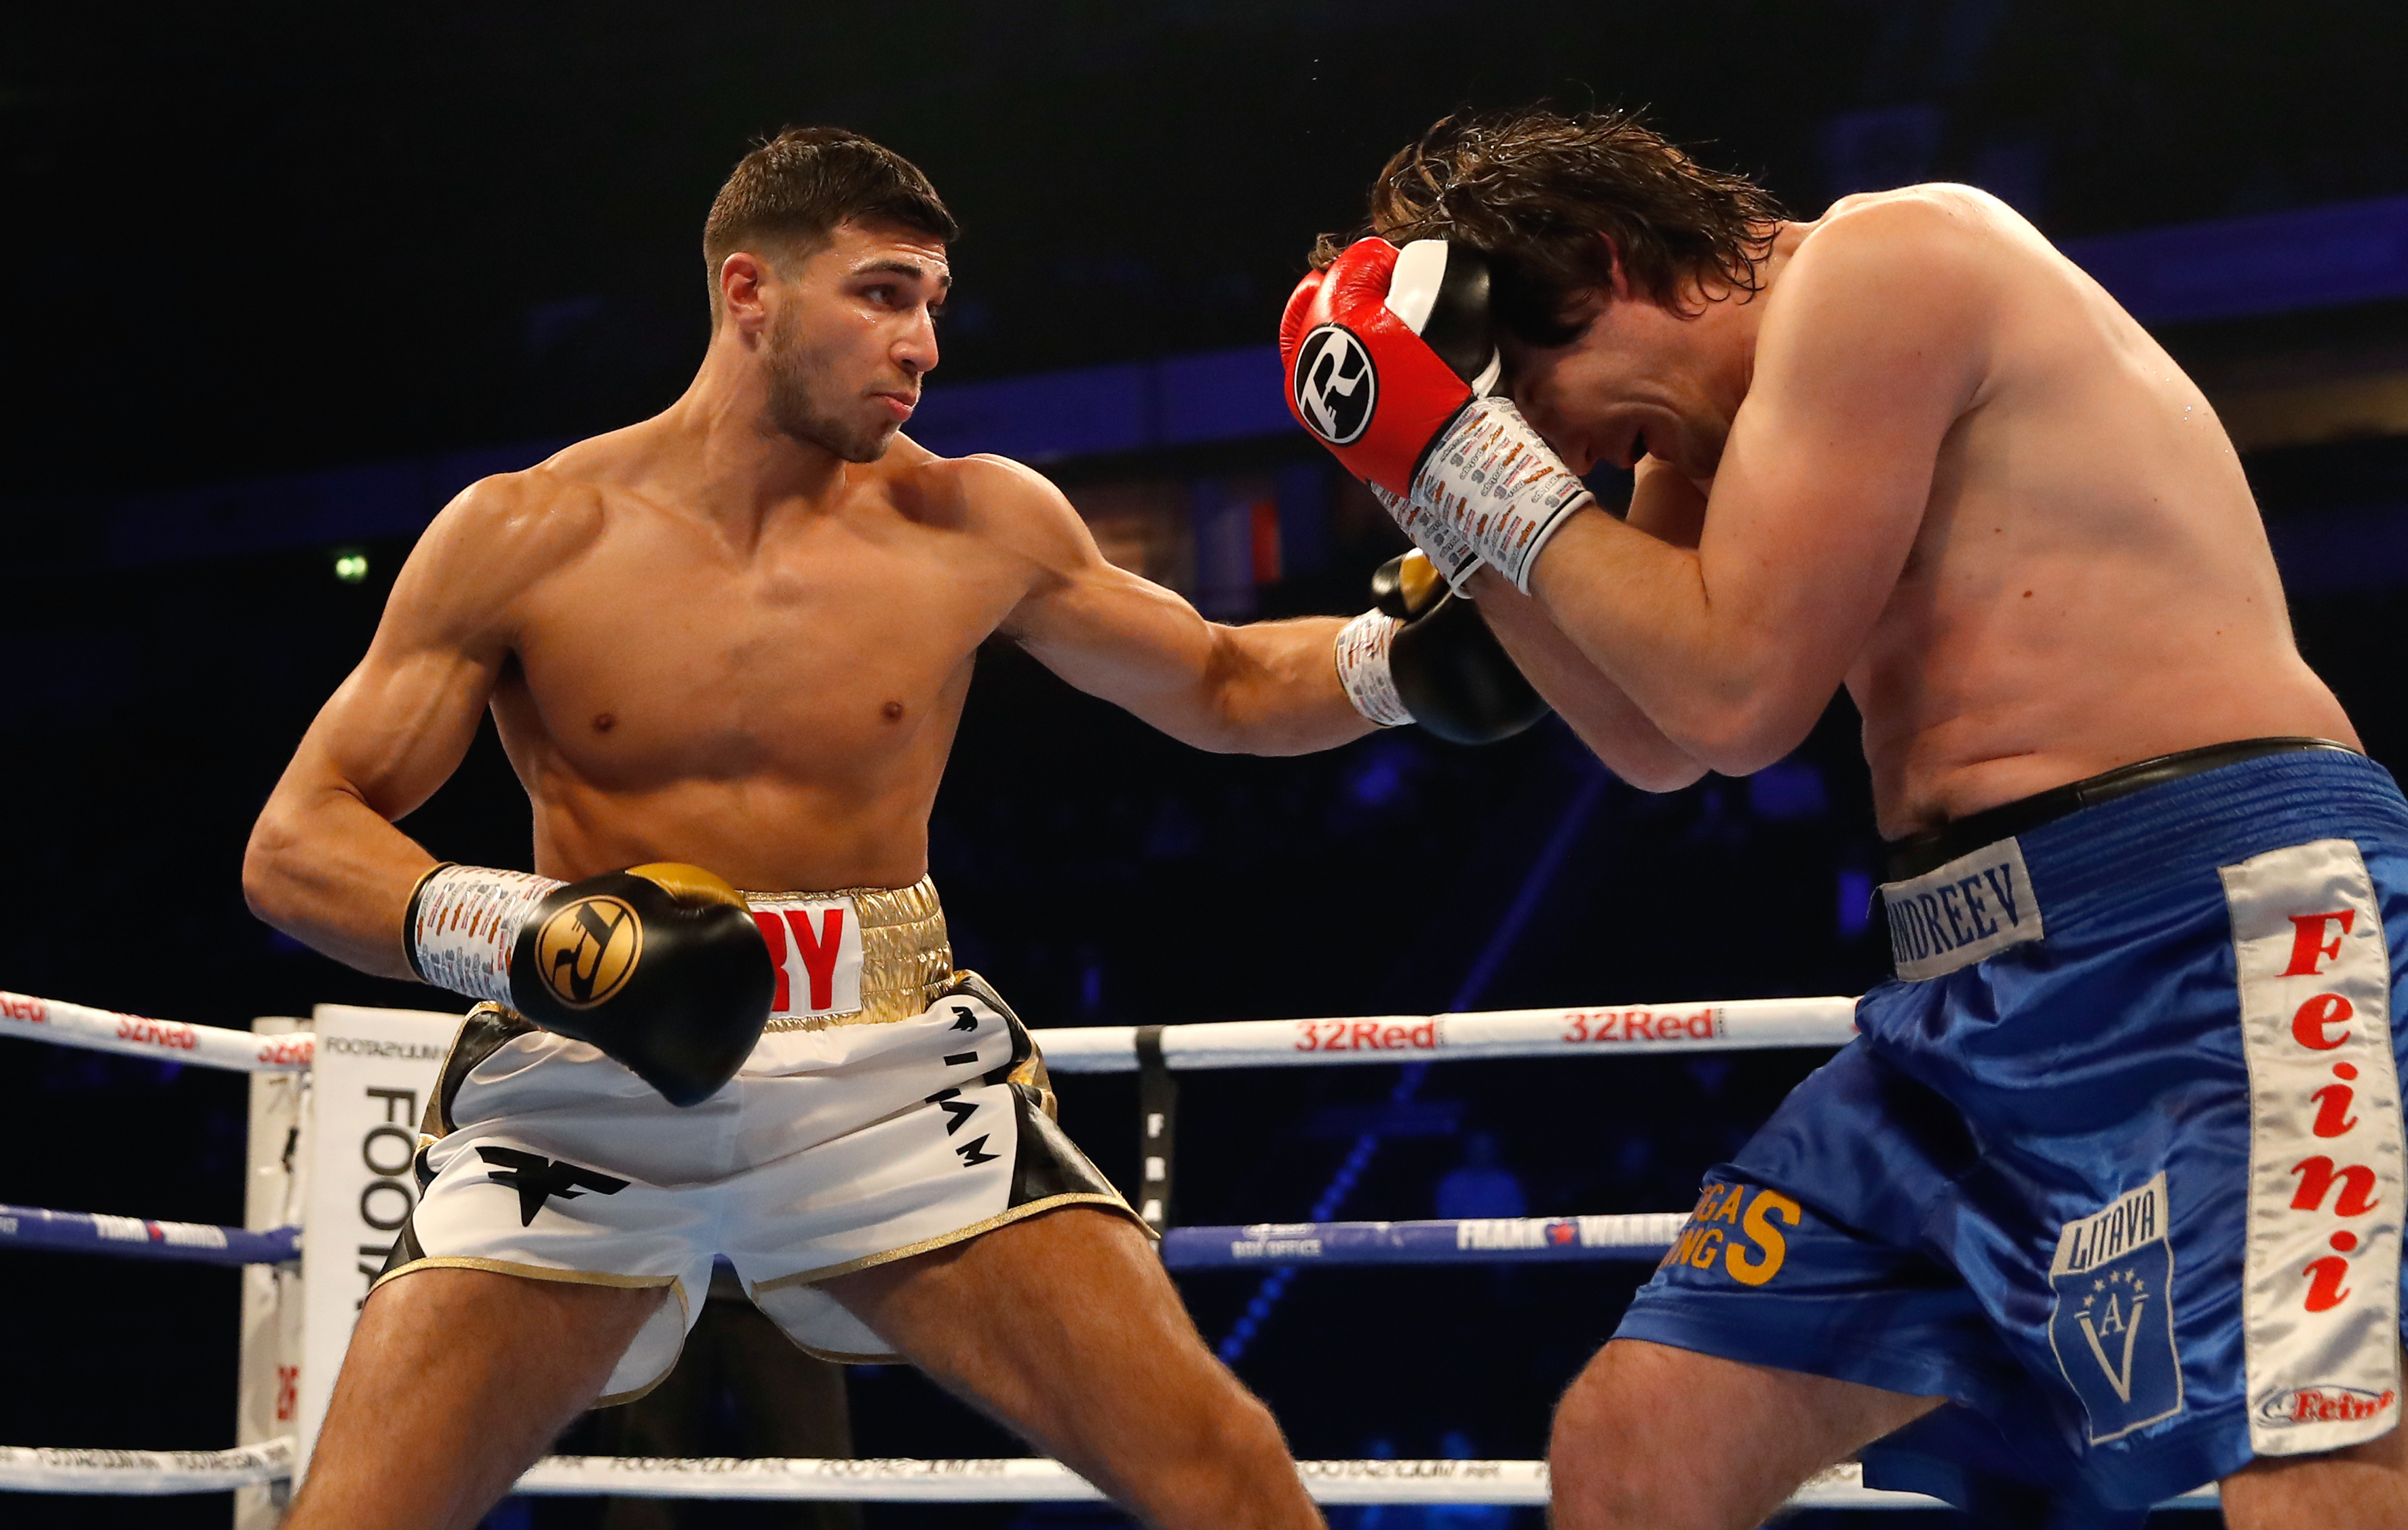 Tommy Fury in action with Jevgenijs Andrejevs. Credit: PA